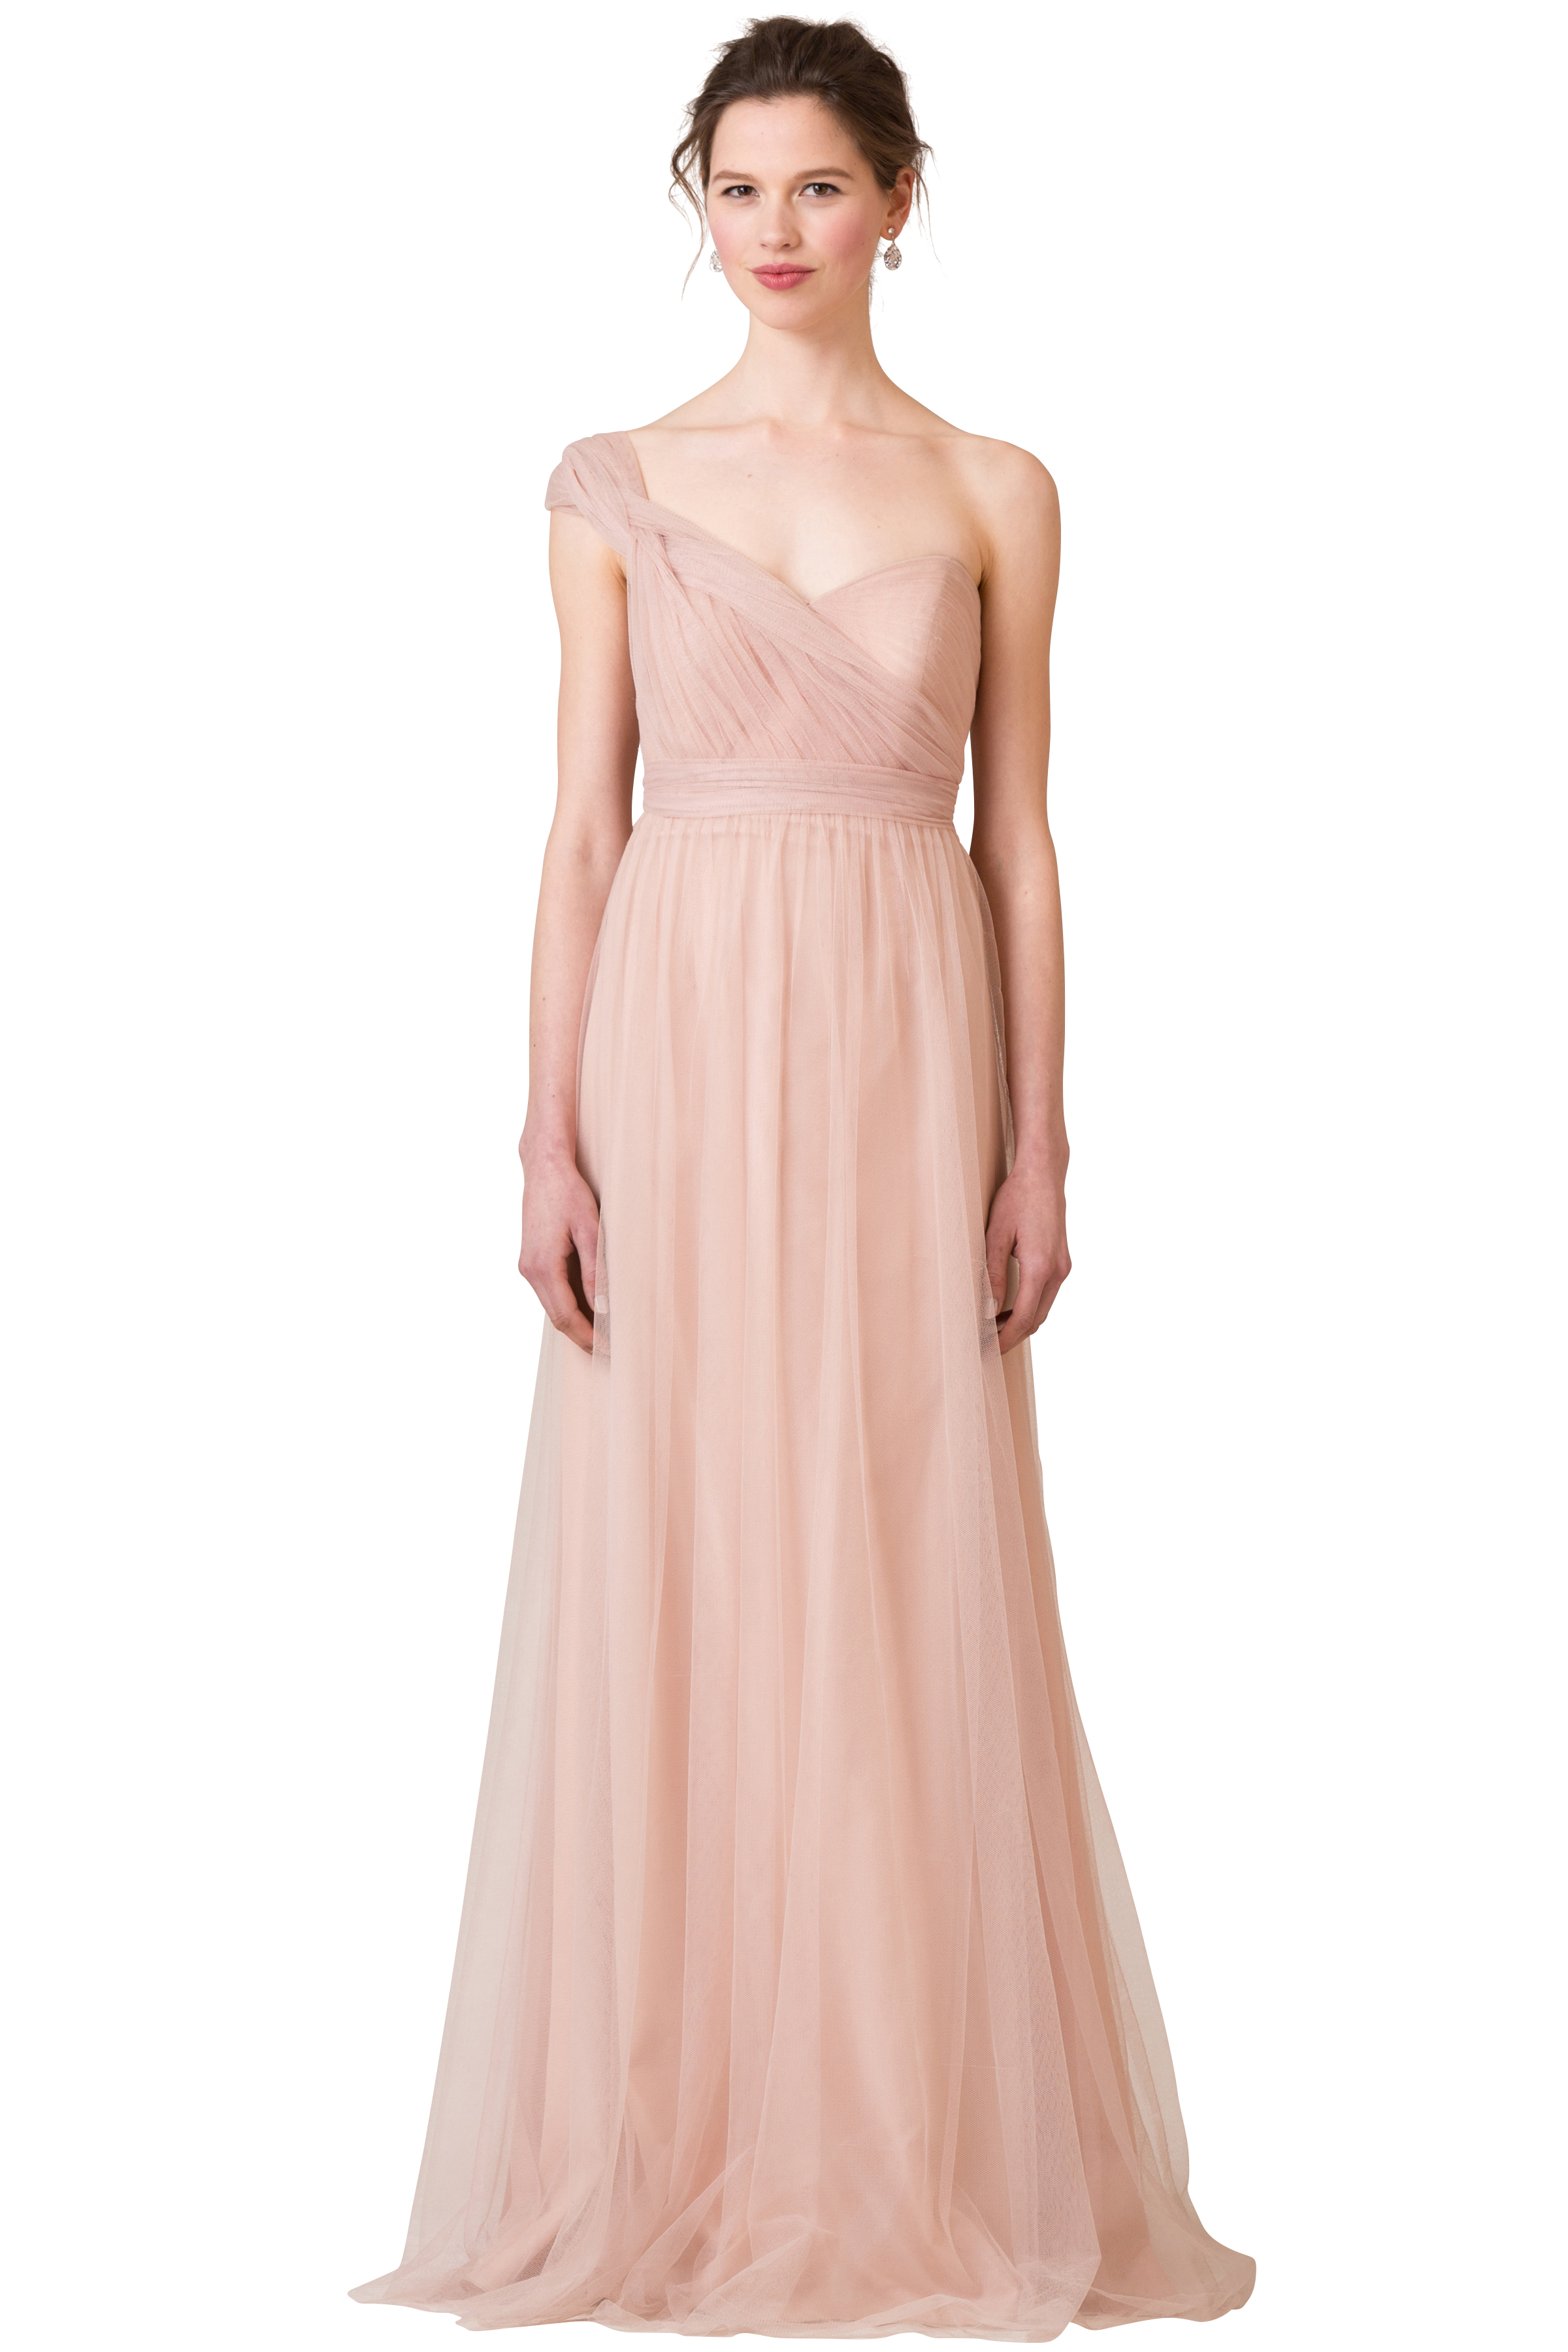 Jenny Yoo 'Annabelle' Cameo Pink Tulle -